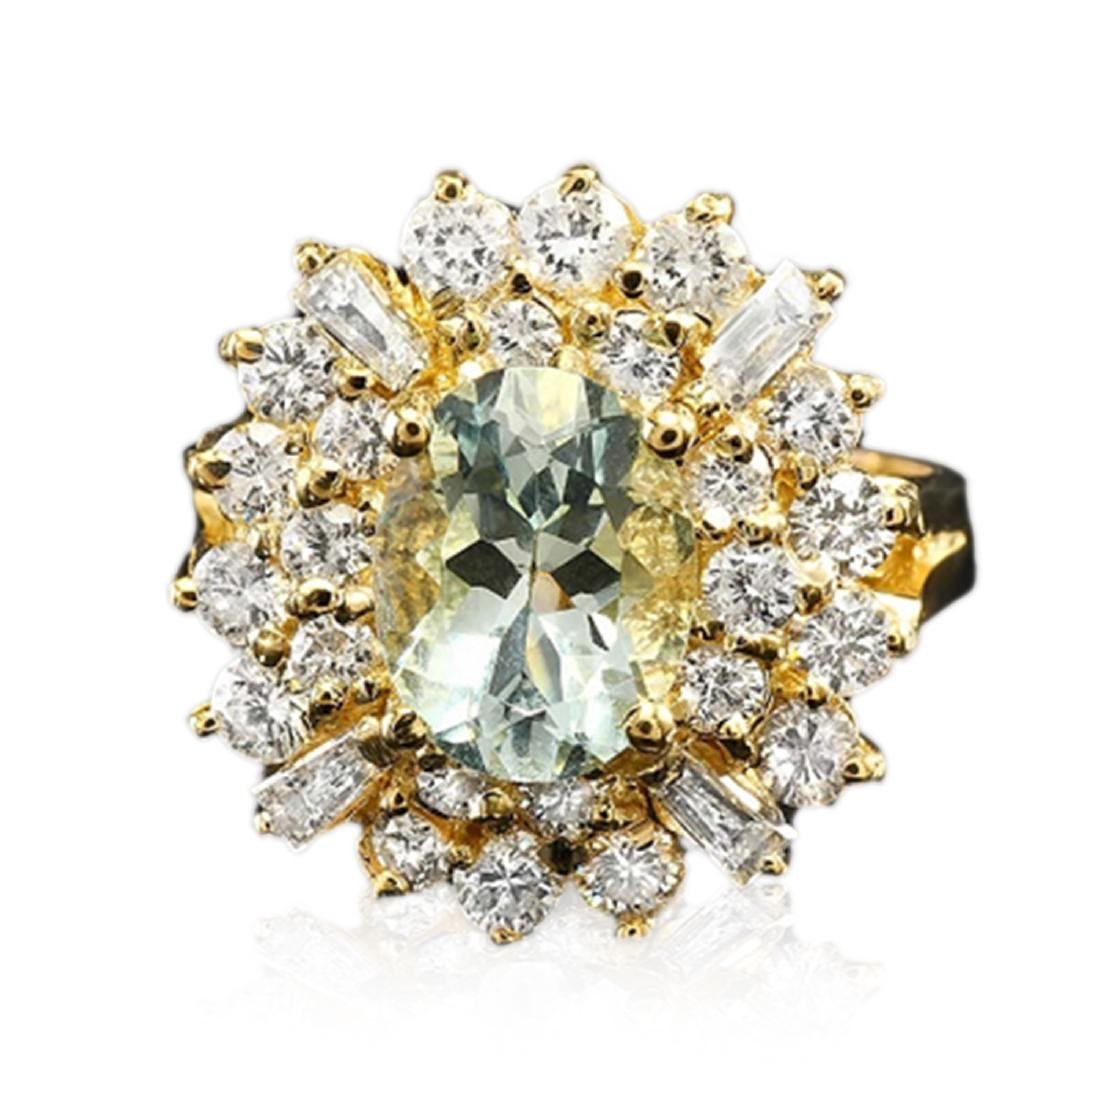 3.25 Carat Natural Aquamarine 18K Solid Yellow Gold